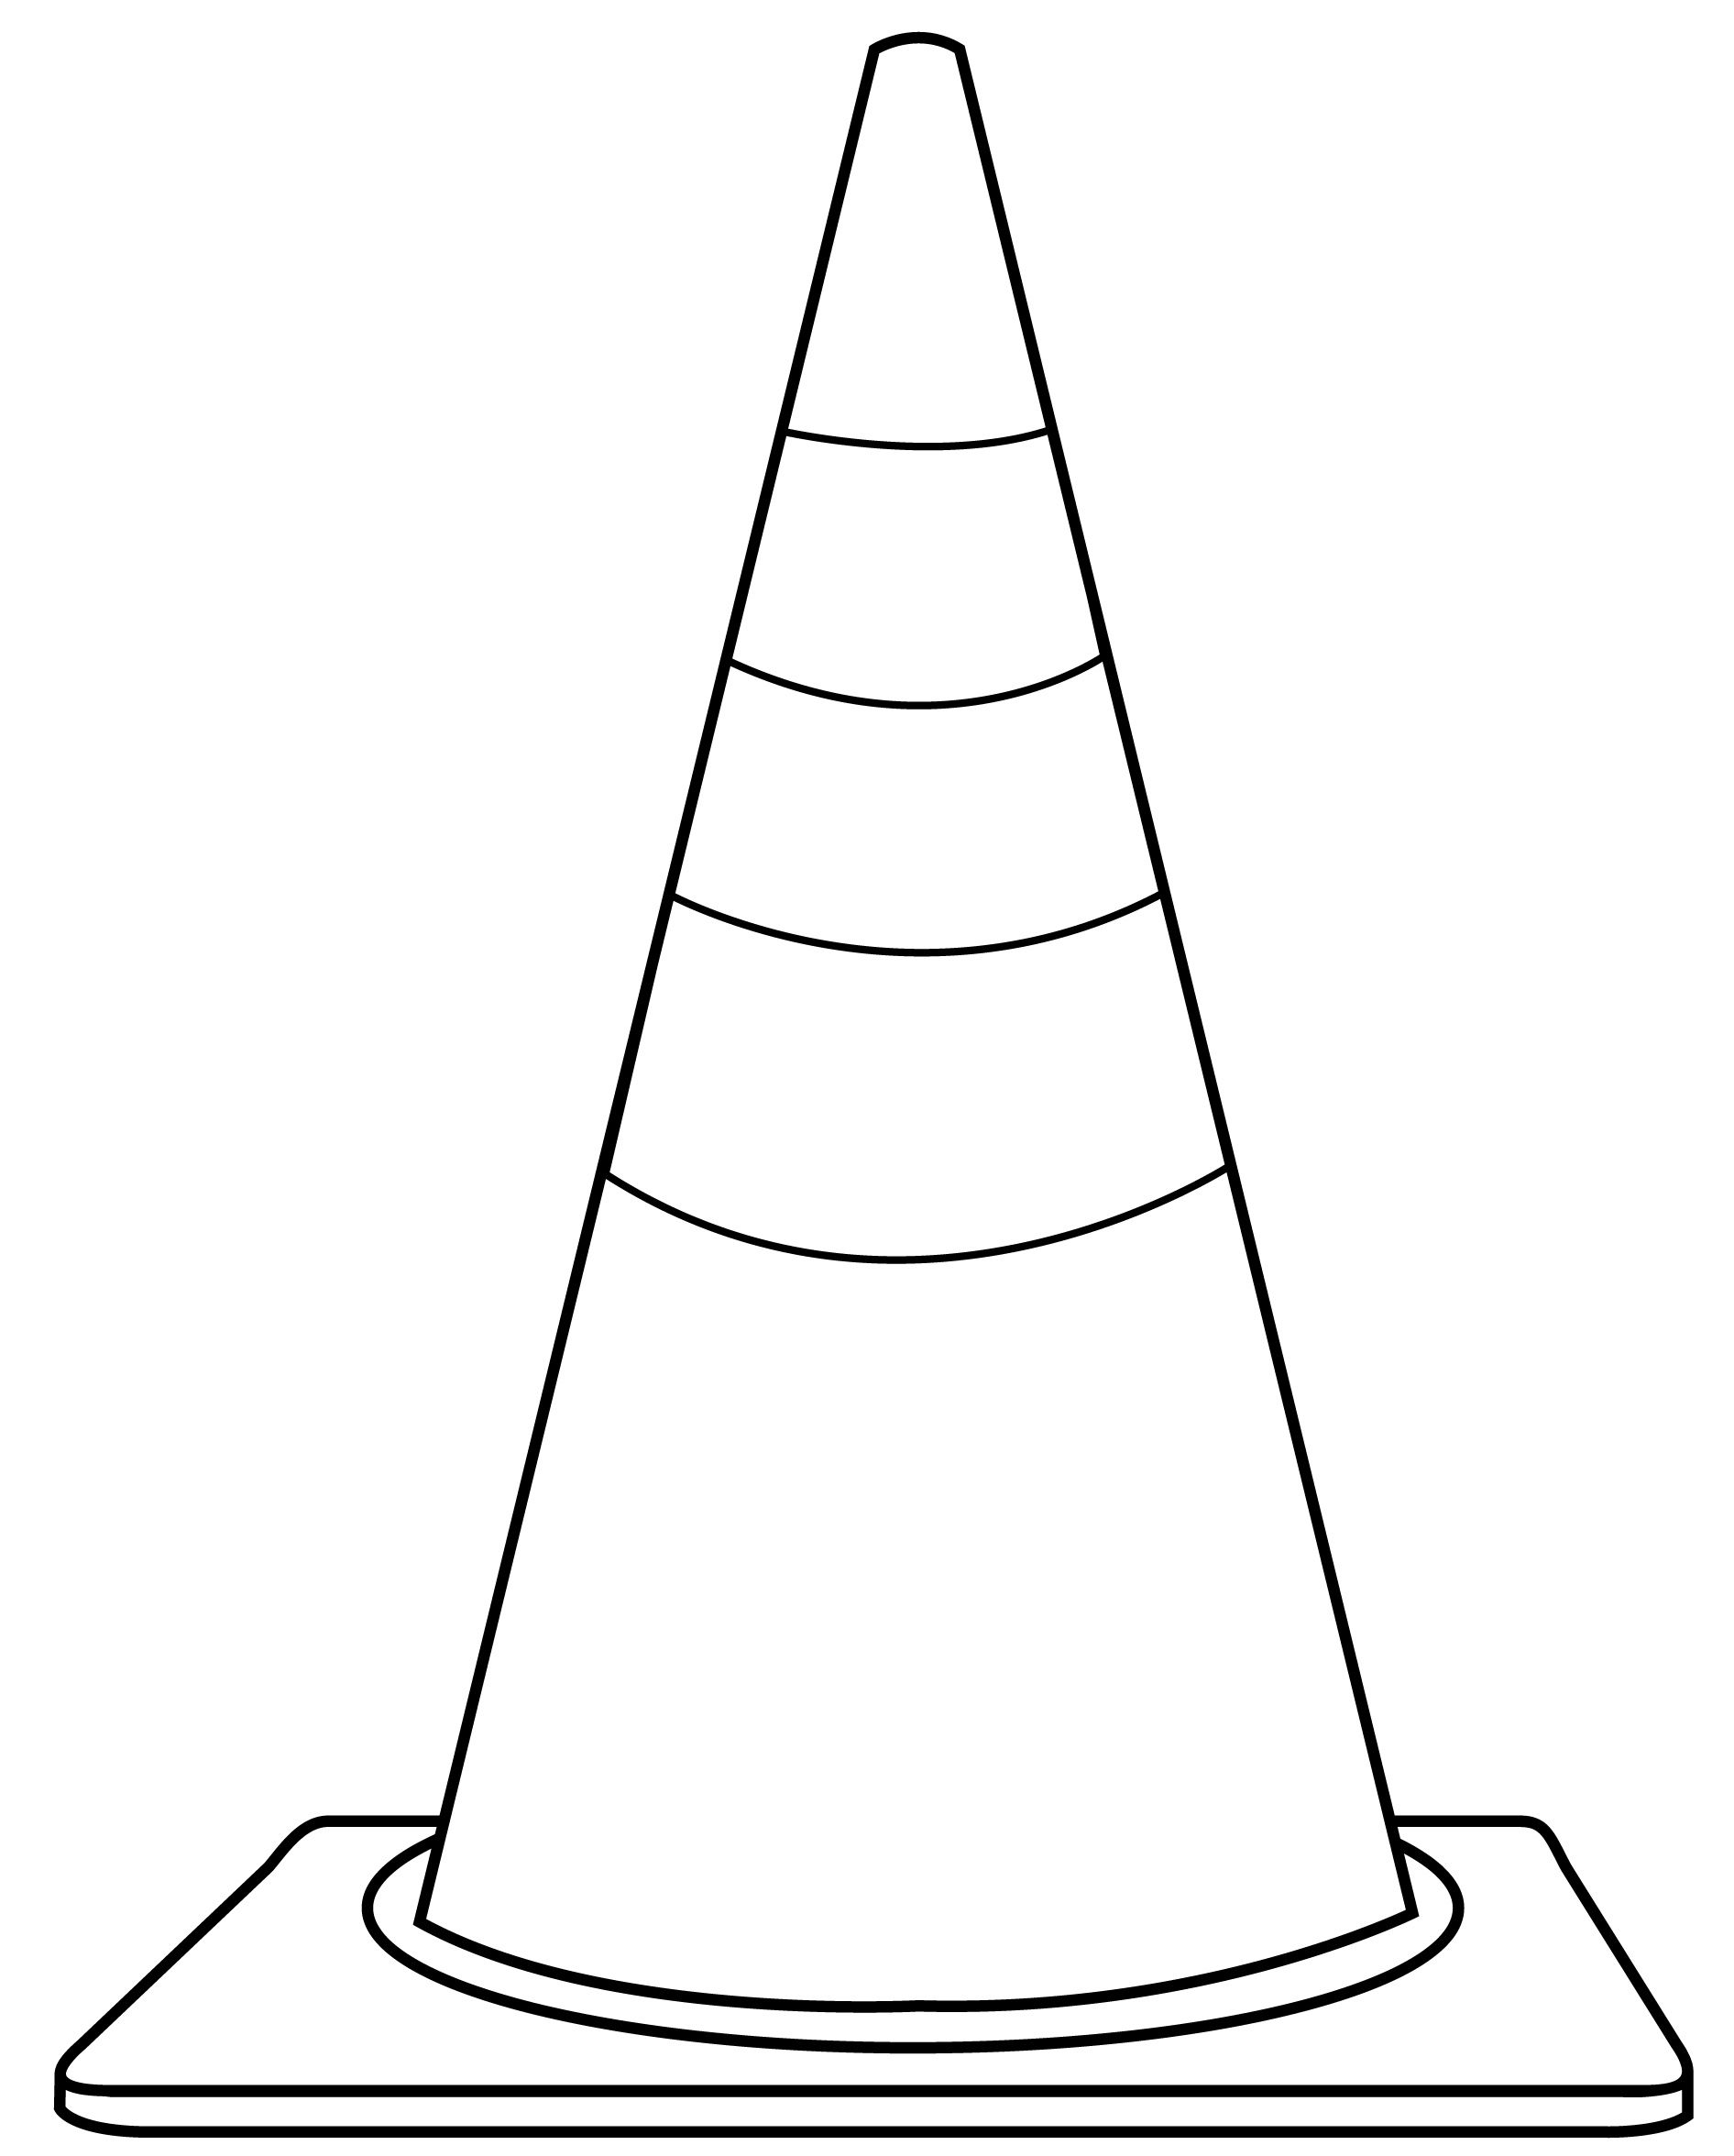 Coloring Pages Of Safety Cones Coloring Pages